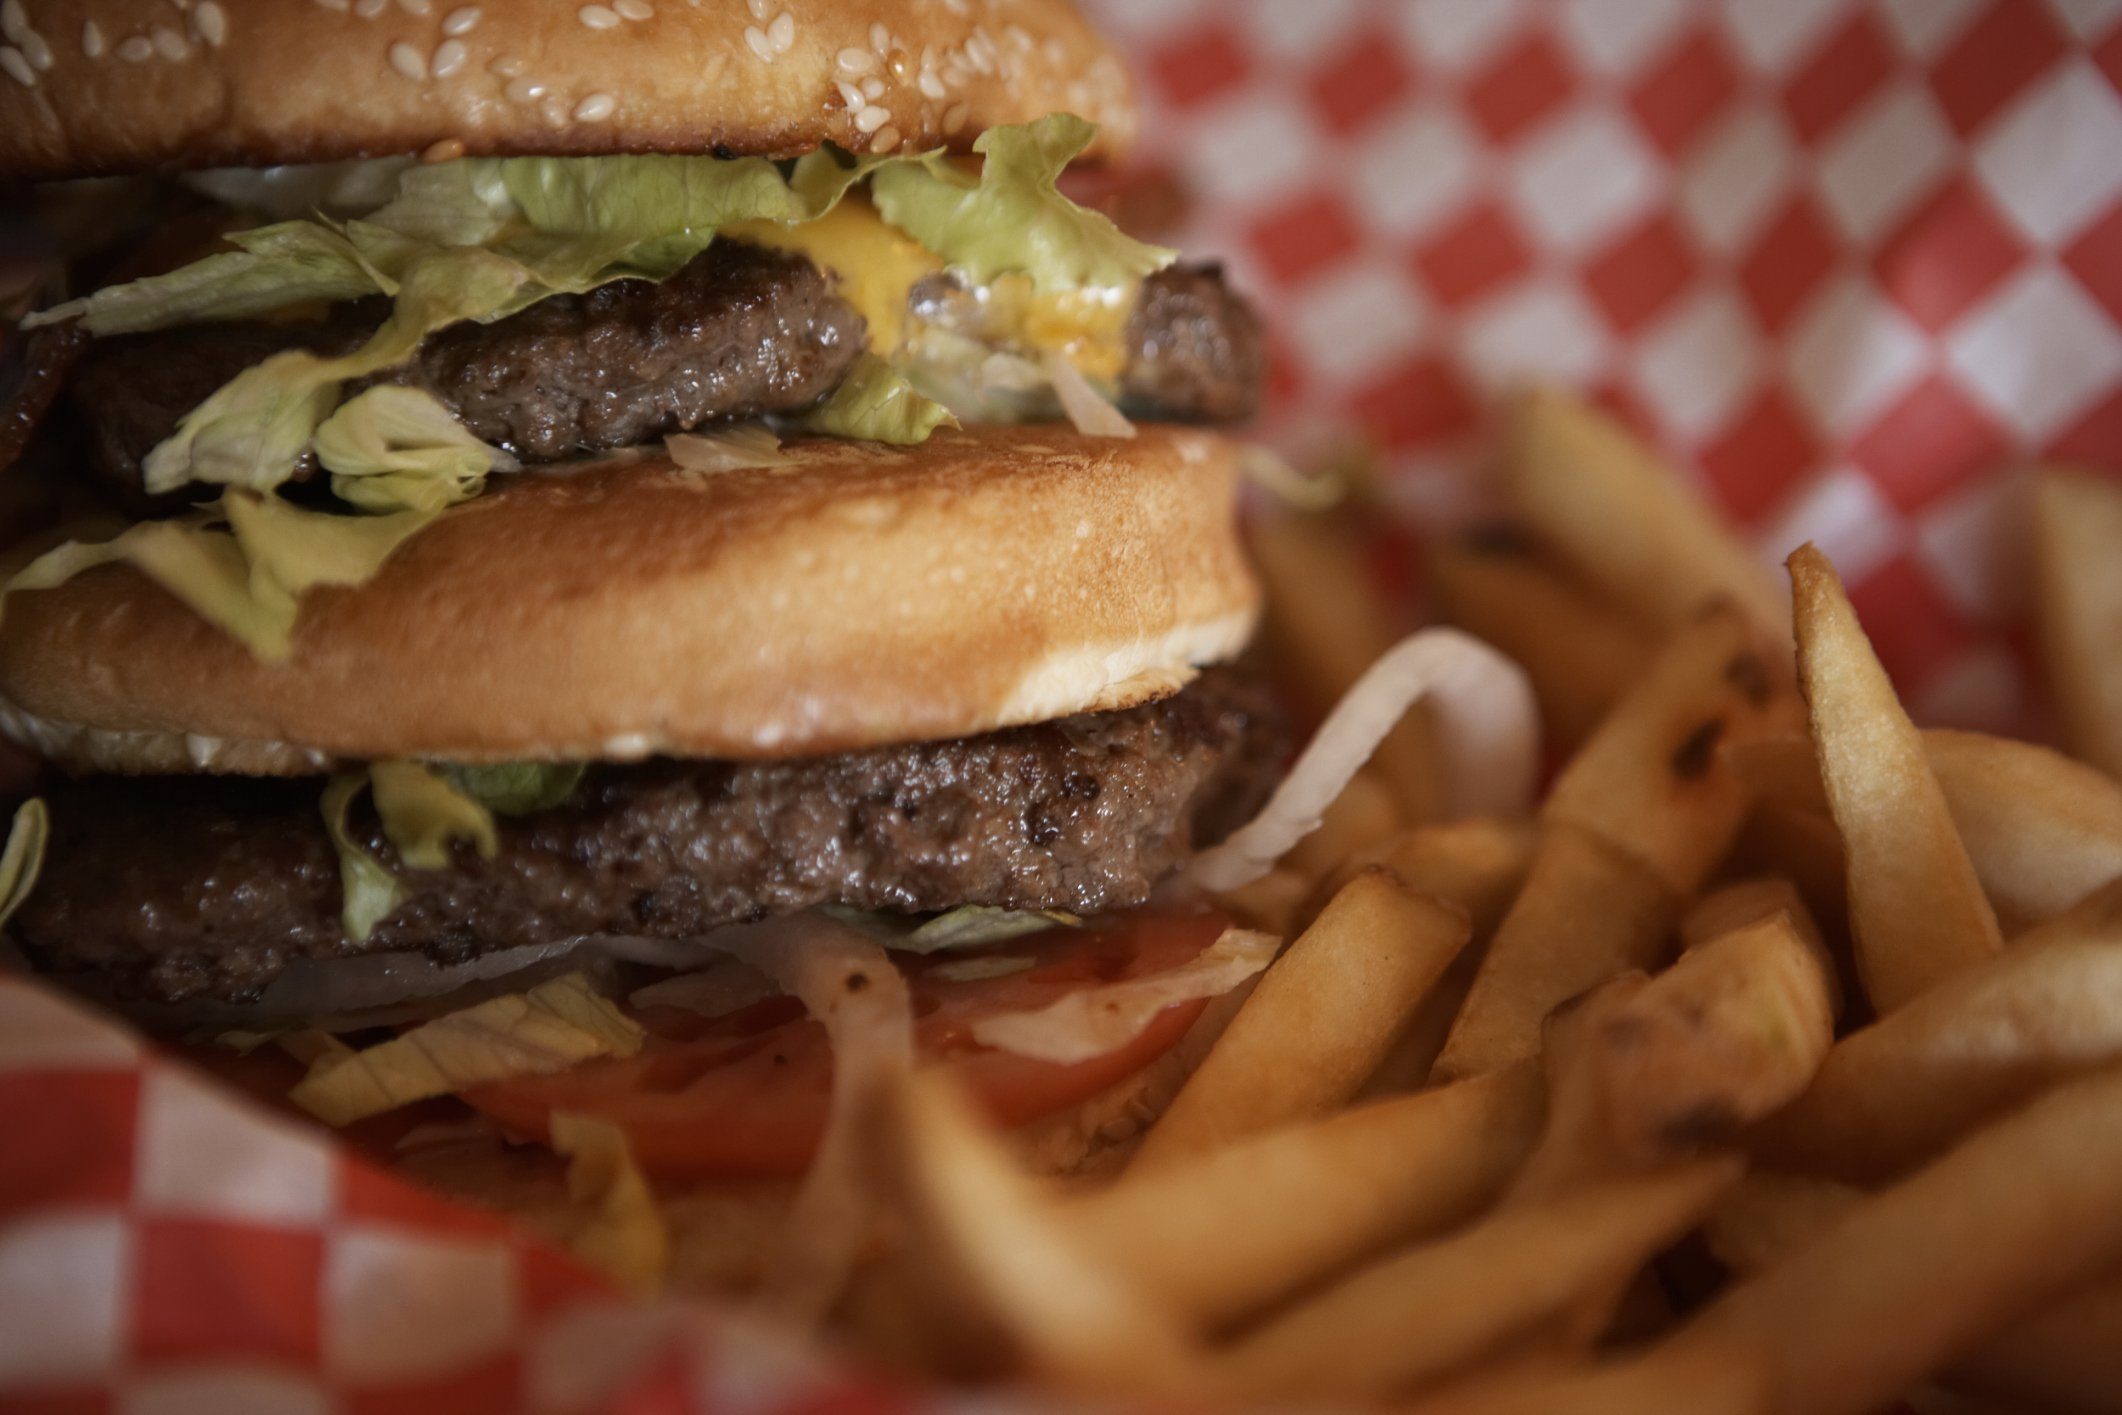 Junk food loving young men have lower sperm counts than healthier eaters, researchers say